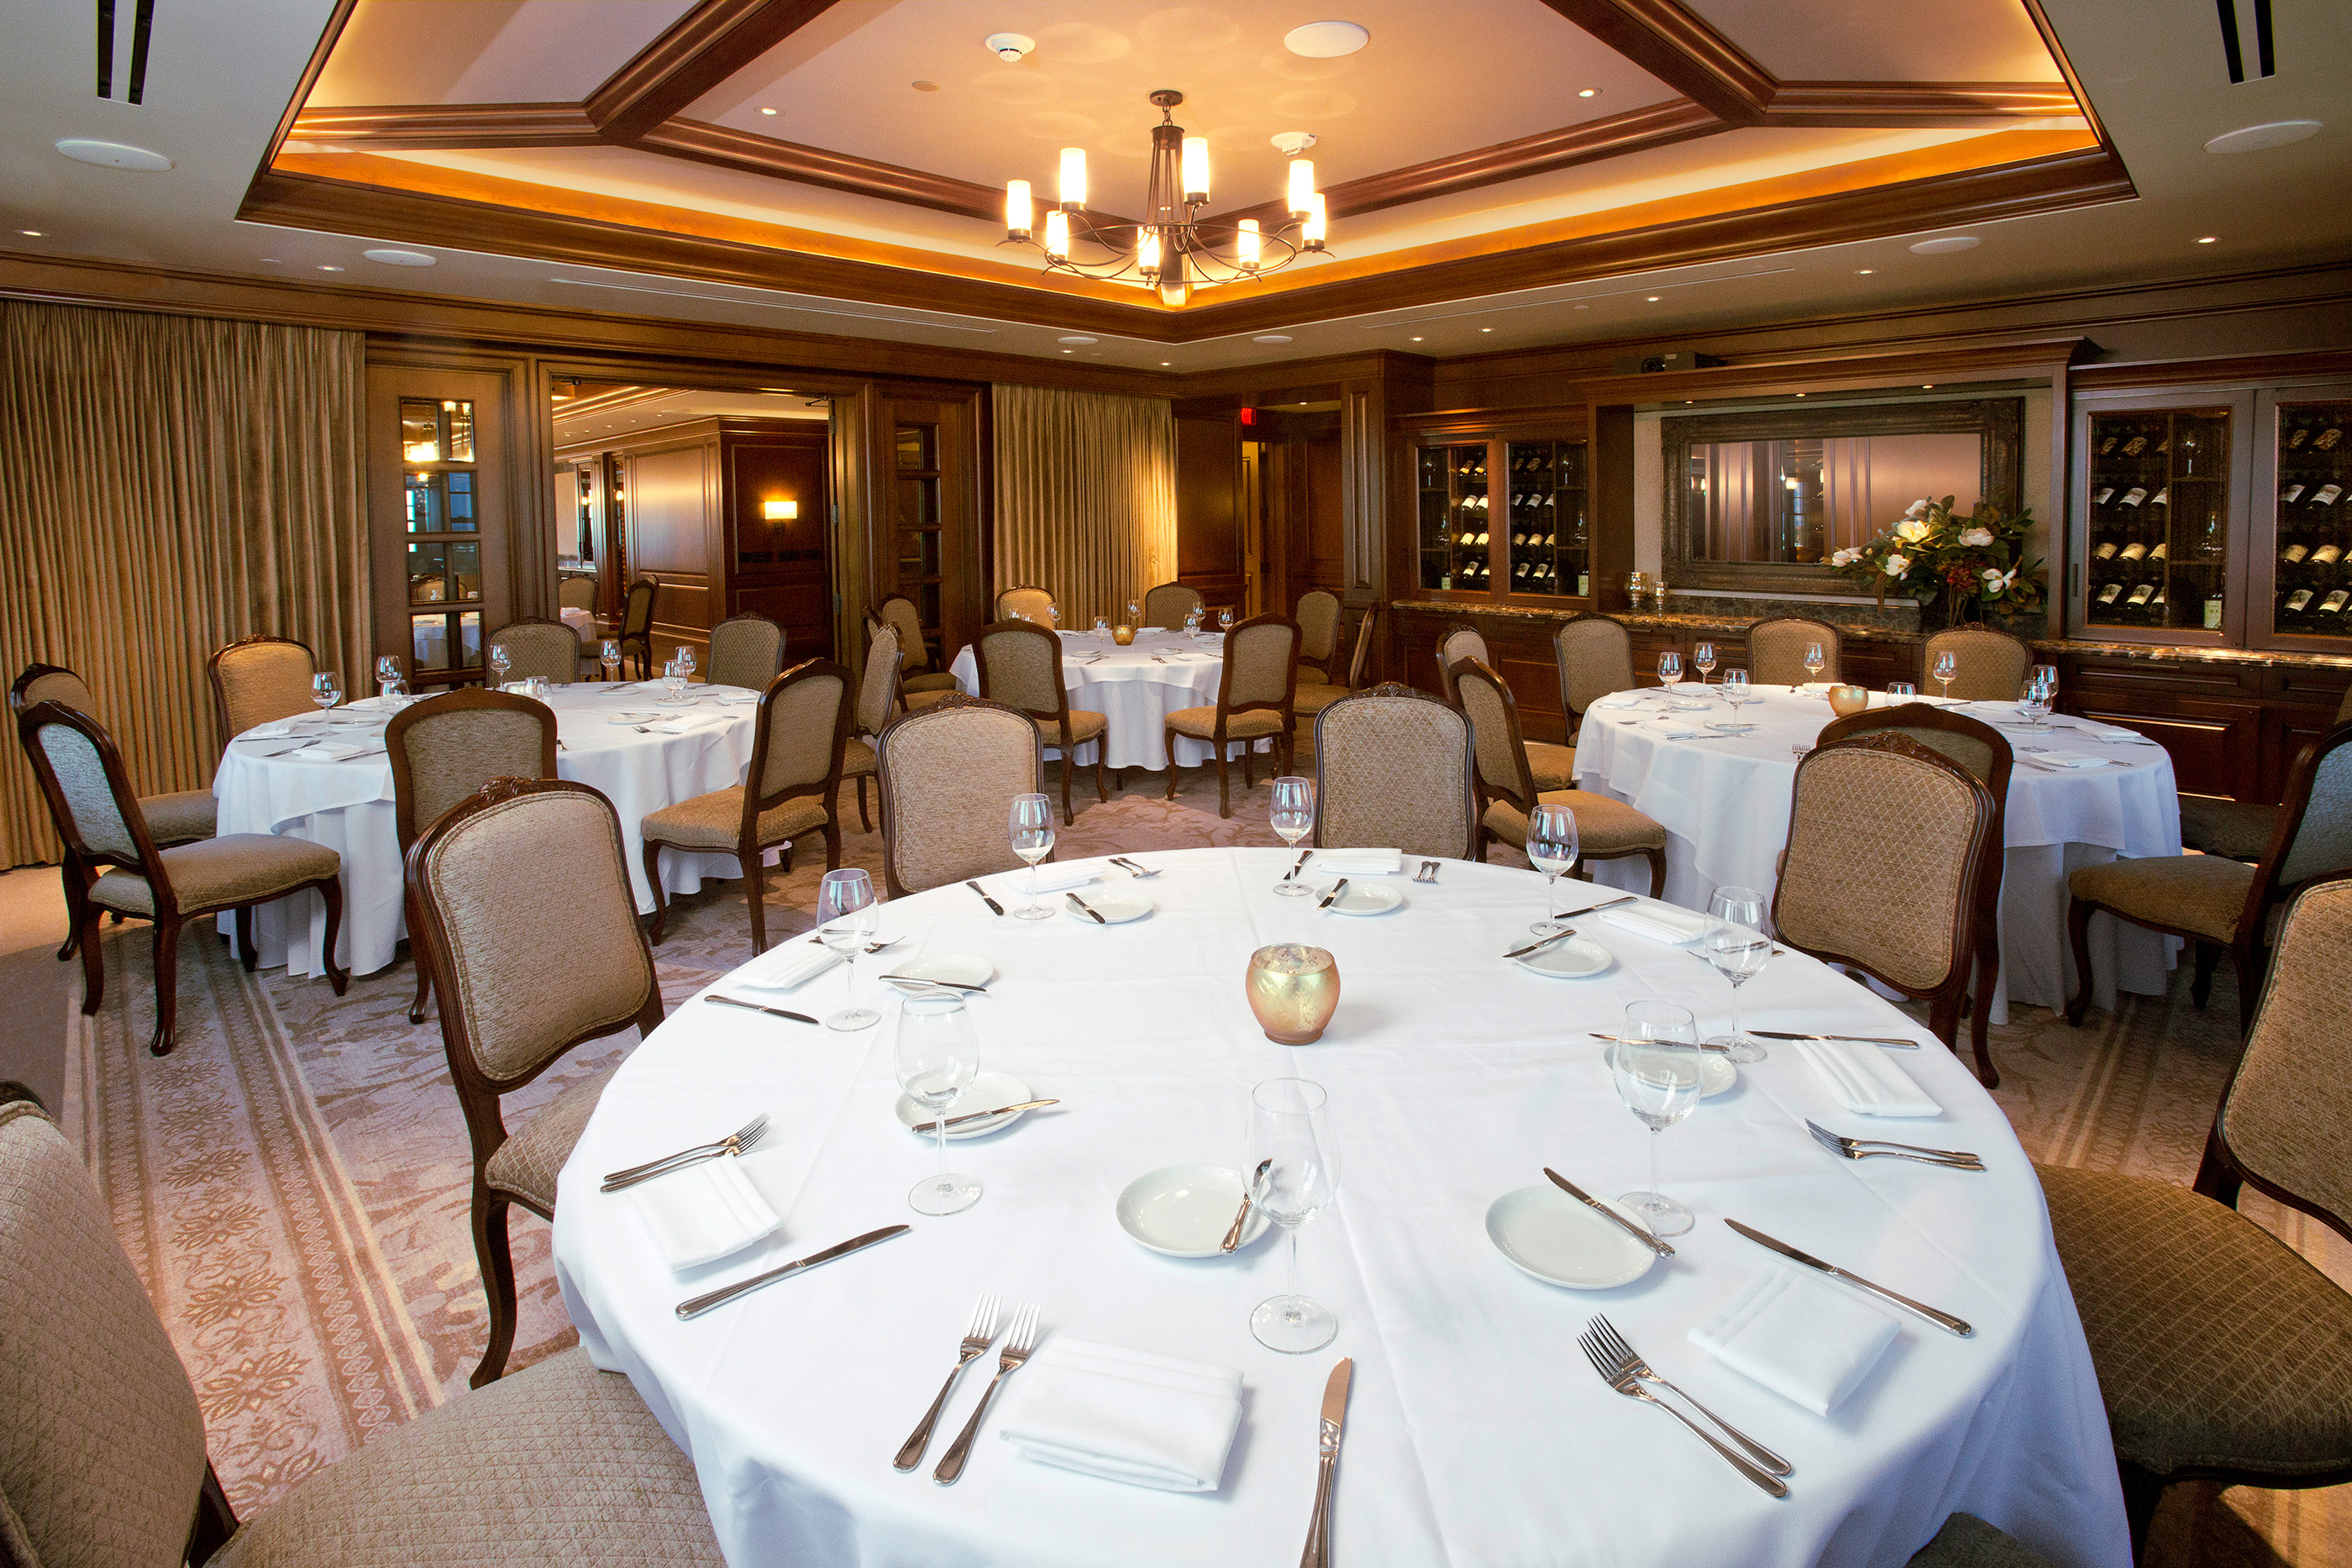 Comfortable room decorated in earth tones with dining tables, wine cabinets, bar, and AV presentation capabilities